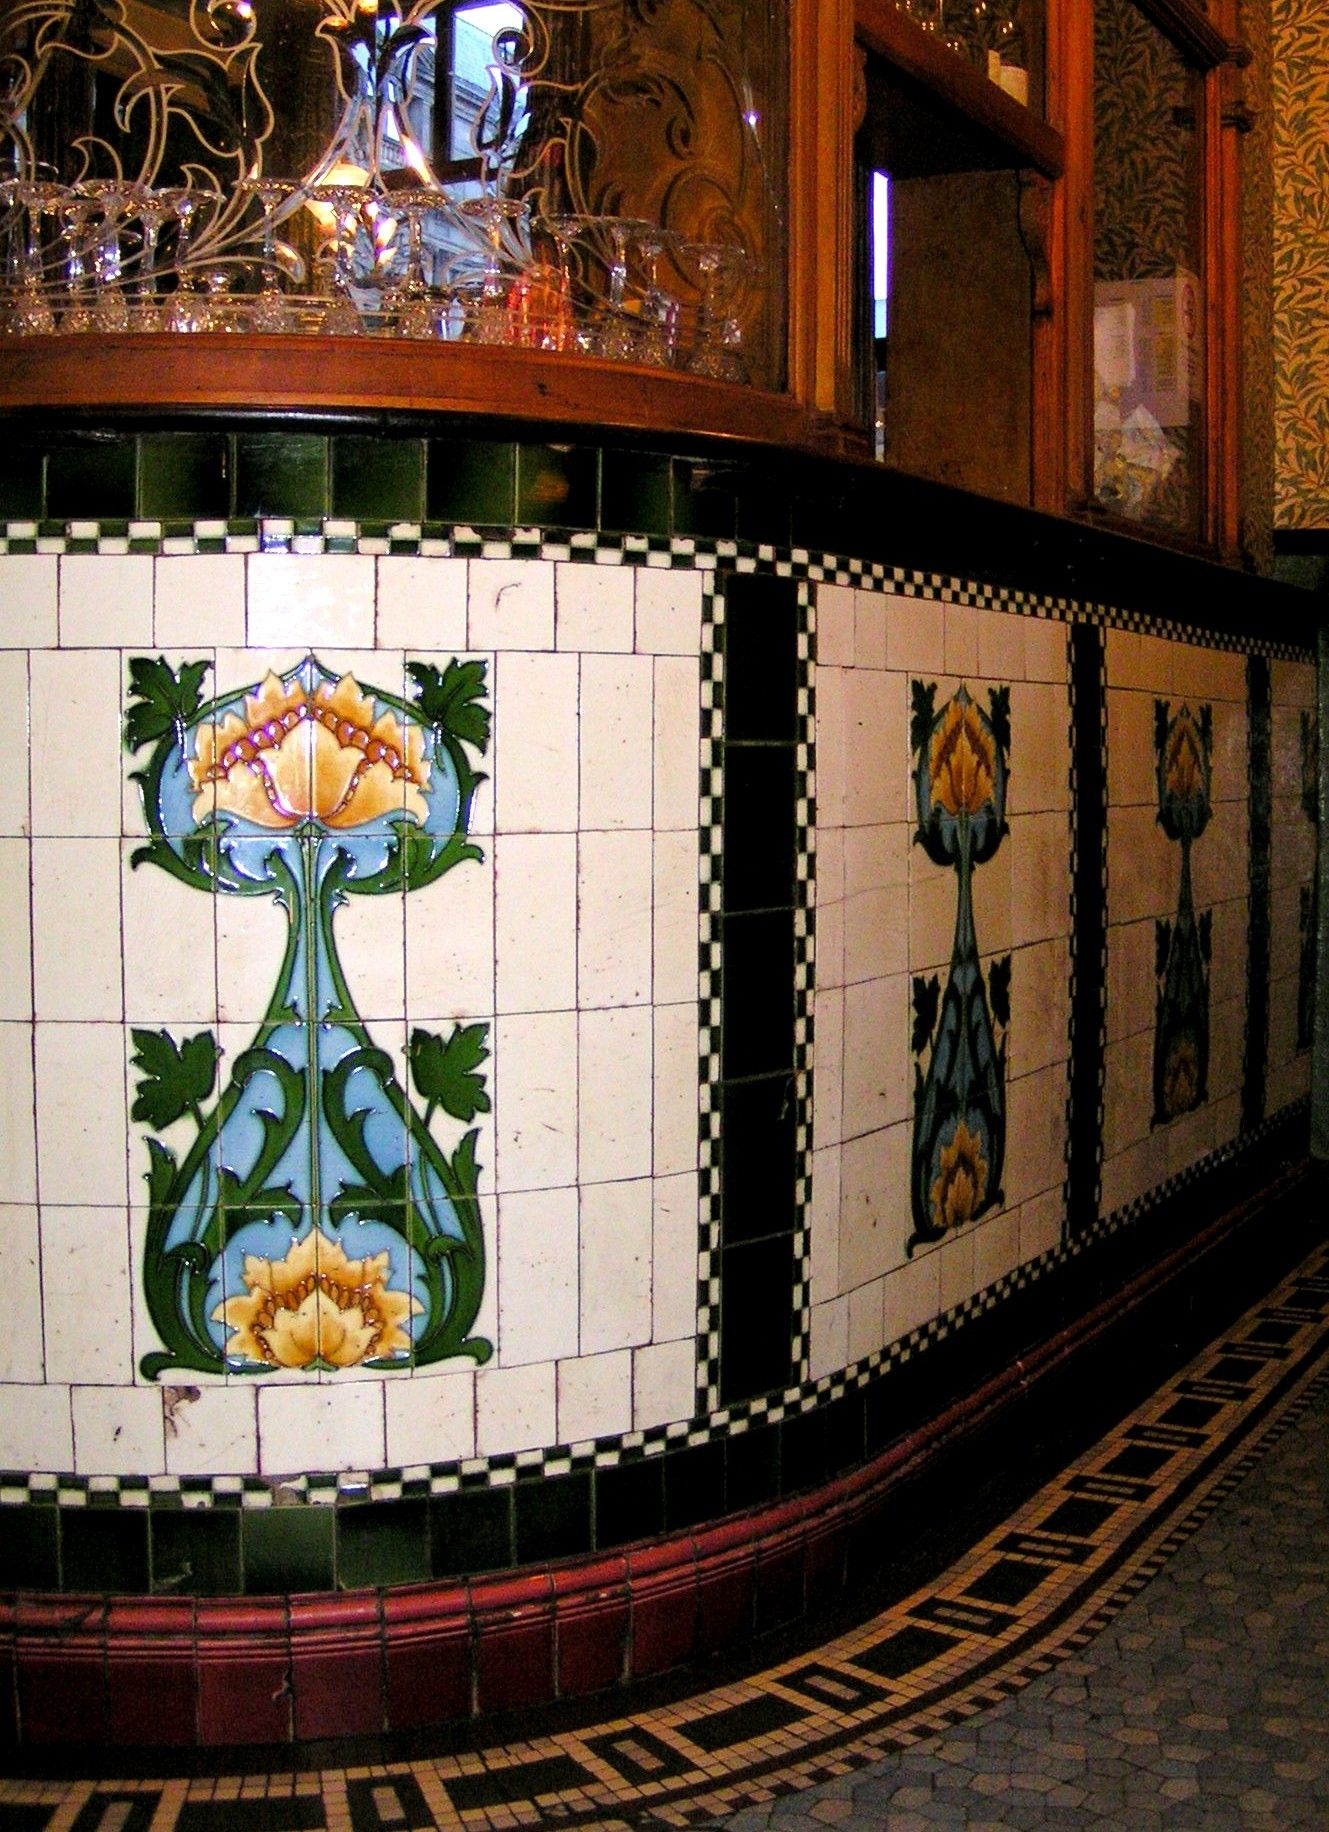 Tile art historical tiles writing about tiles and tile art historical tiles writing about tiles and architectural ceramics dailygadgetfo Choice Image